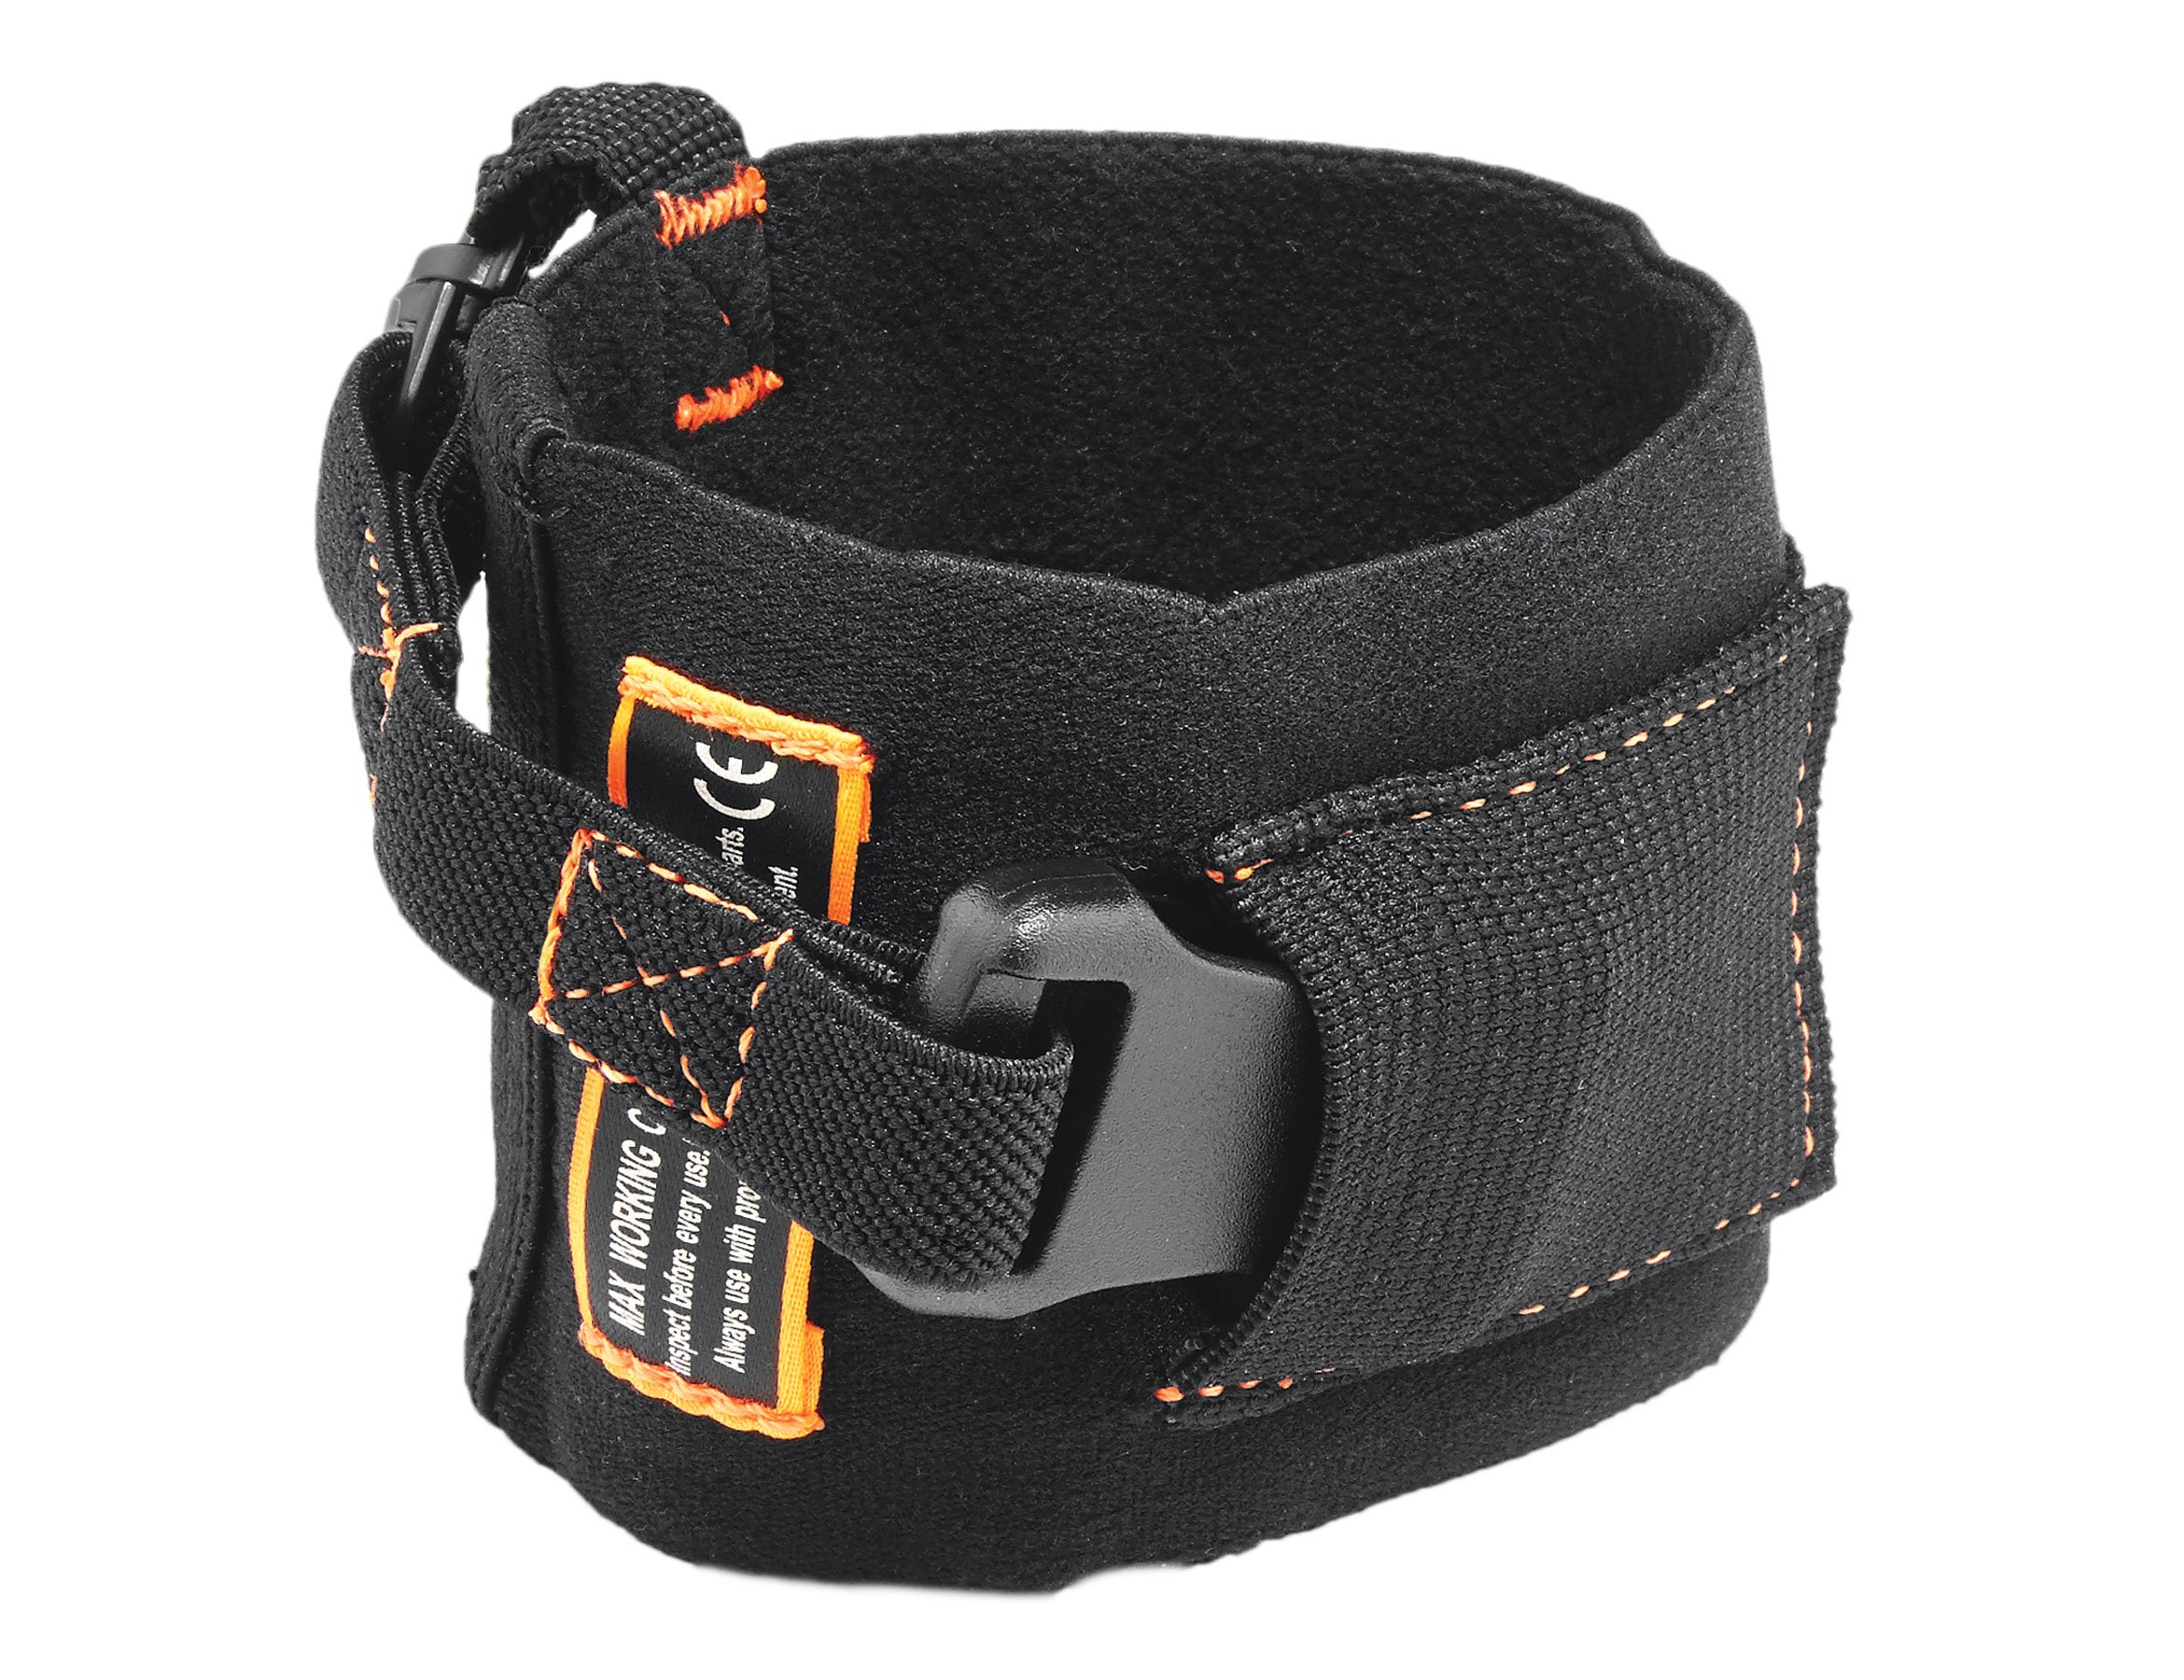 Ergodyne Squids 3116 Pull-On Wrist Tool Lanyard with Buckle Connection, 3 Pounds by Ergodyne (Image #2)